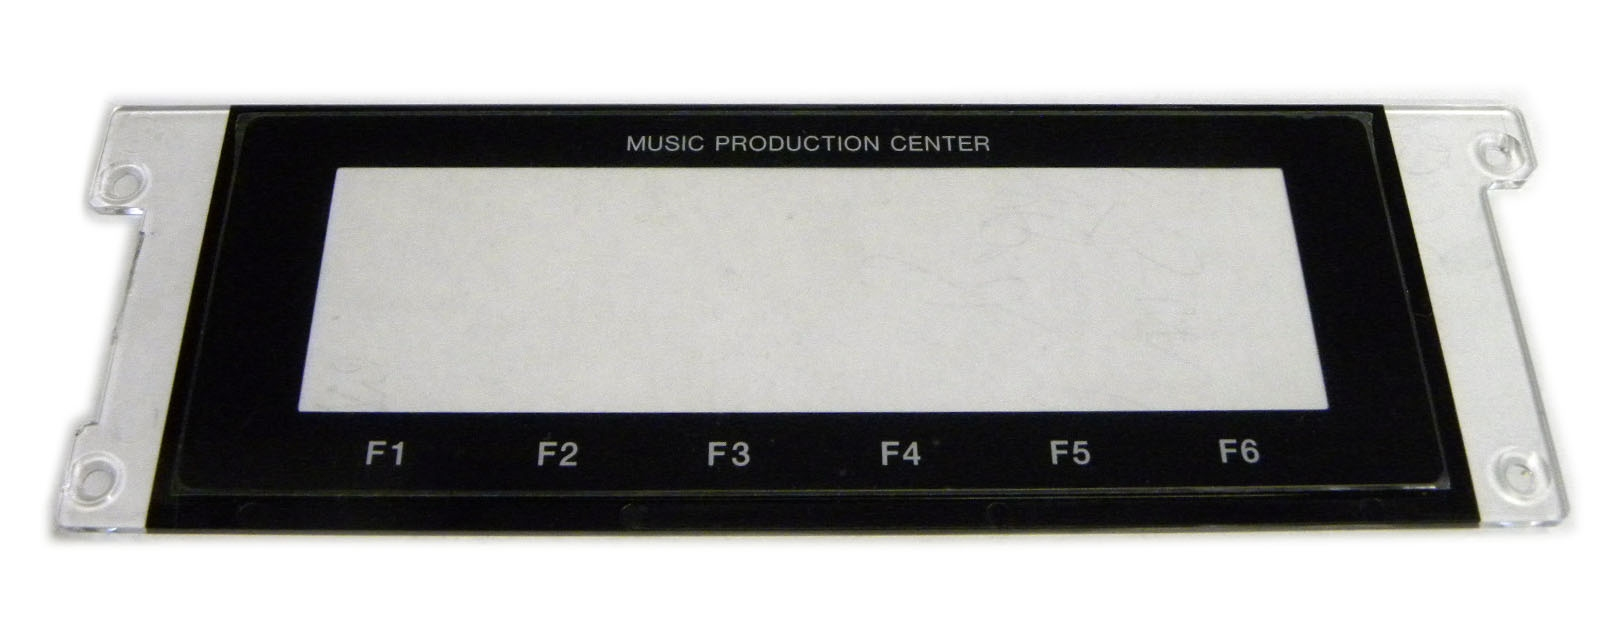 akai-lcd-window-for-mpc1000-in-black